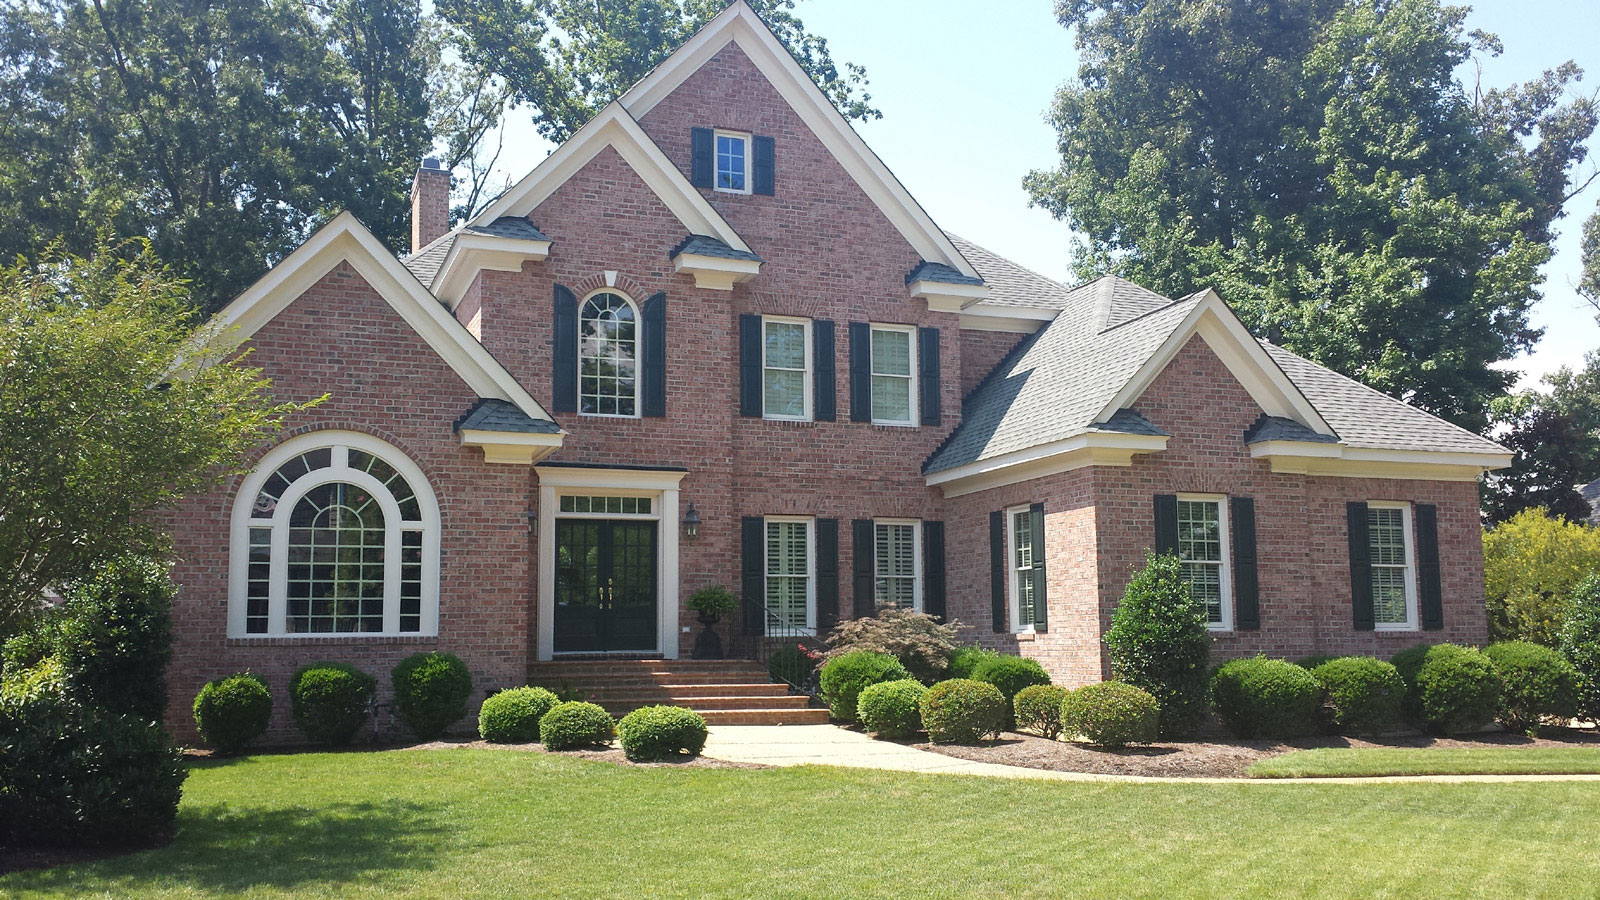 New & replacement roofing by R.A. Woodall & Son Construction - Williamsburg VA